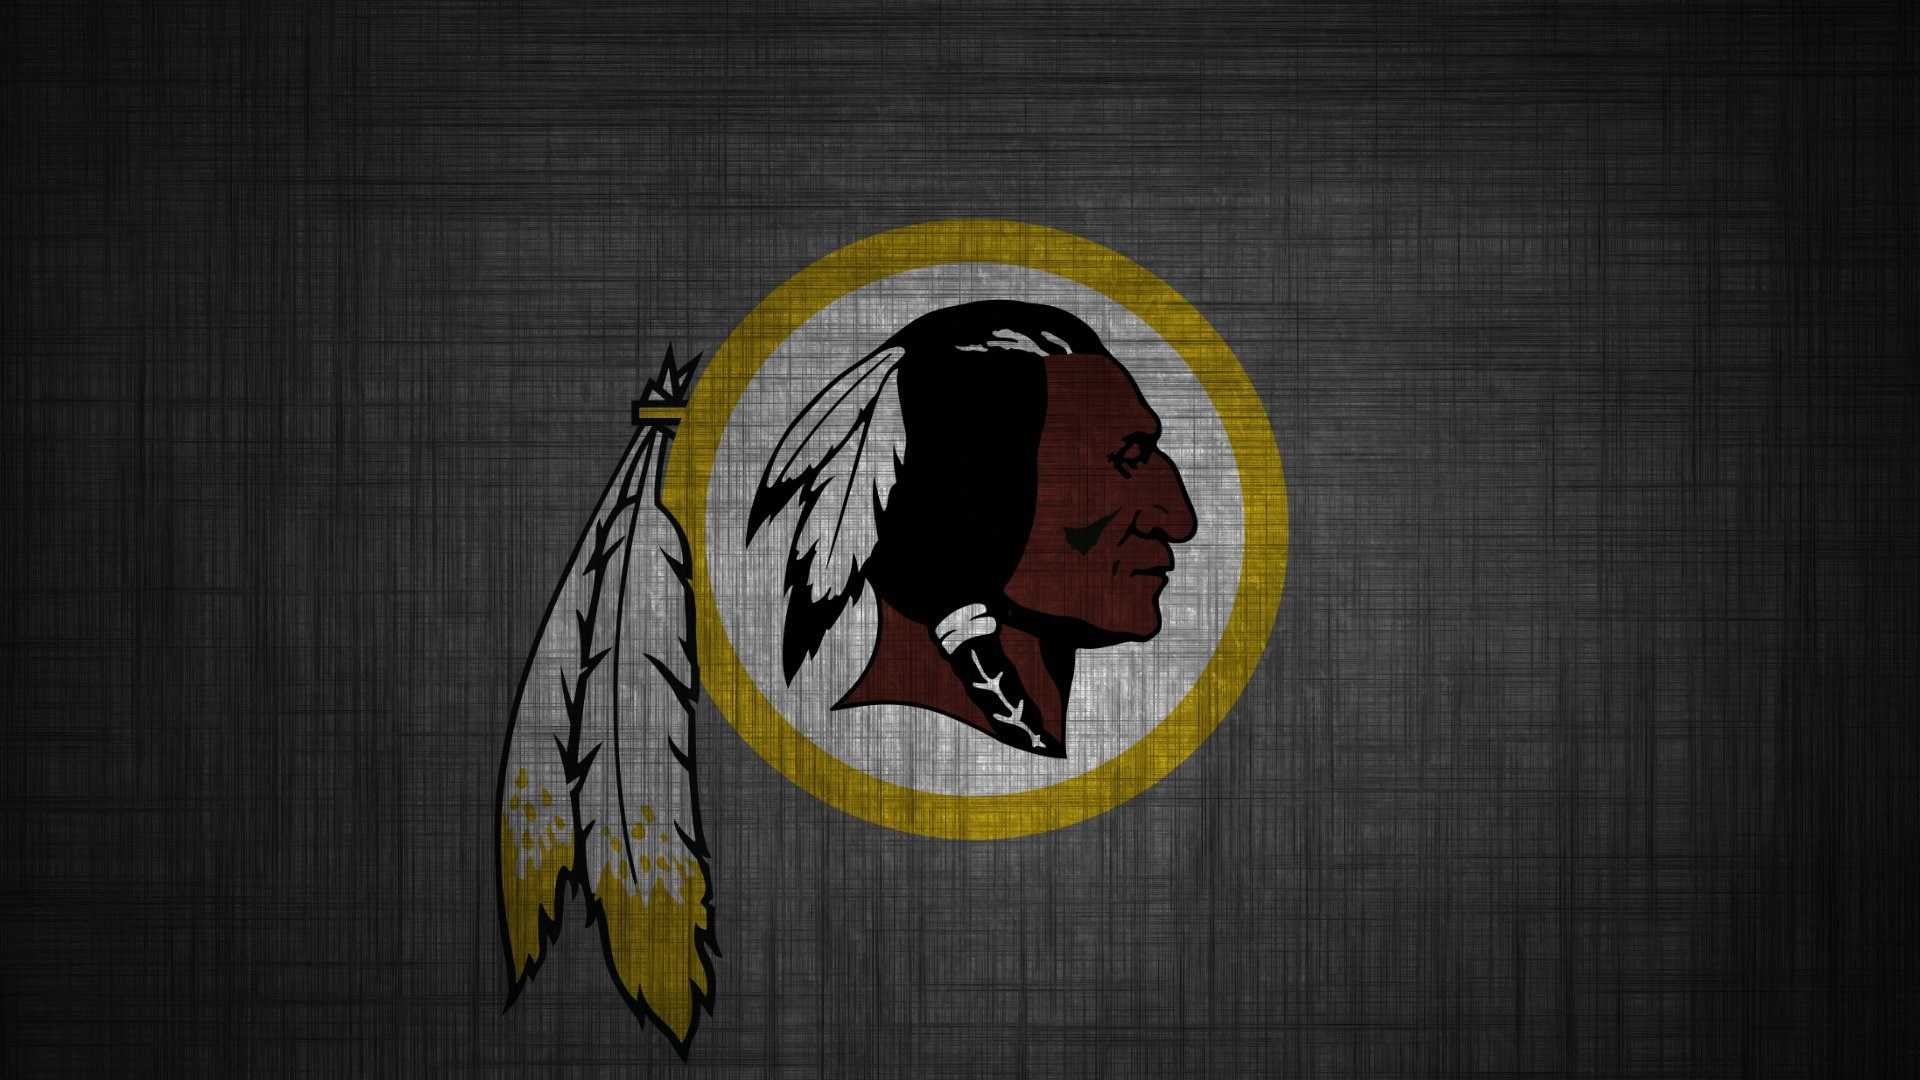 hd-redskins-1920-x-1080-kB-wallpaper-wp3406735